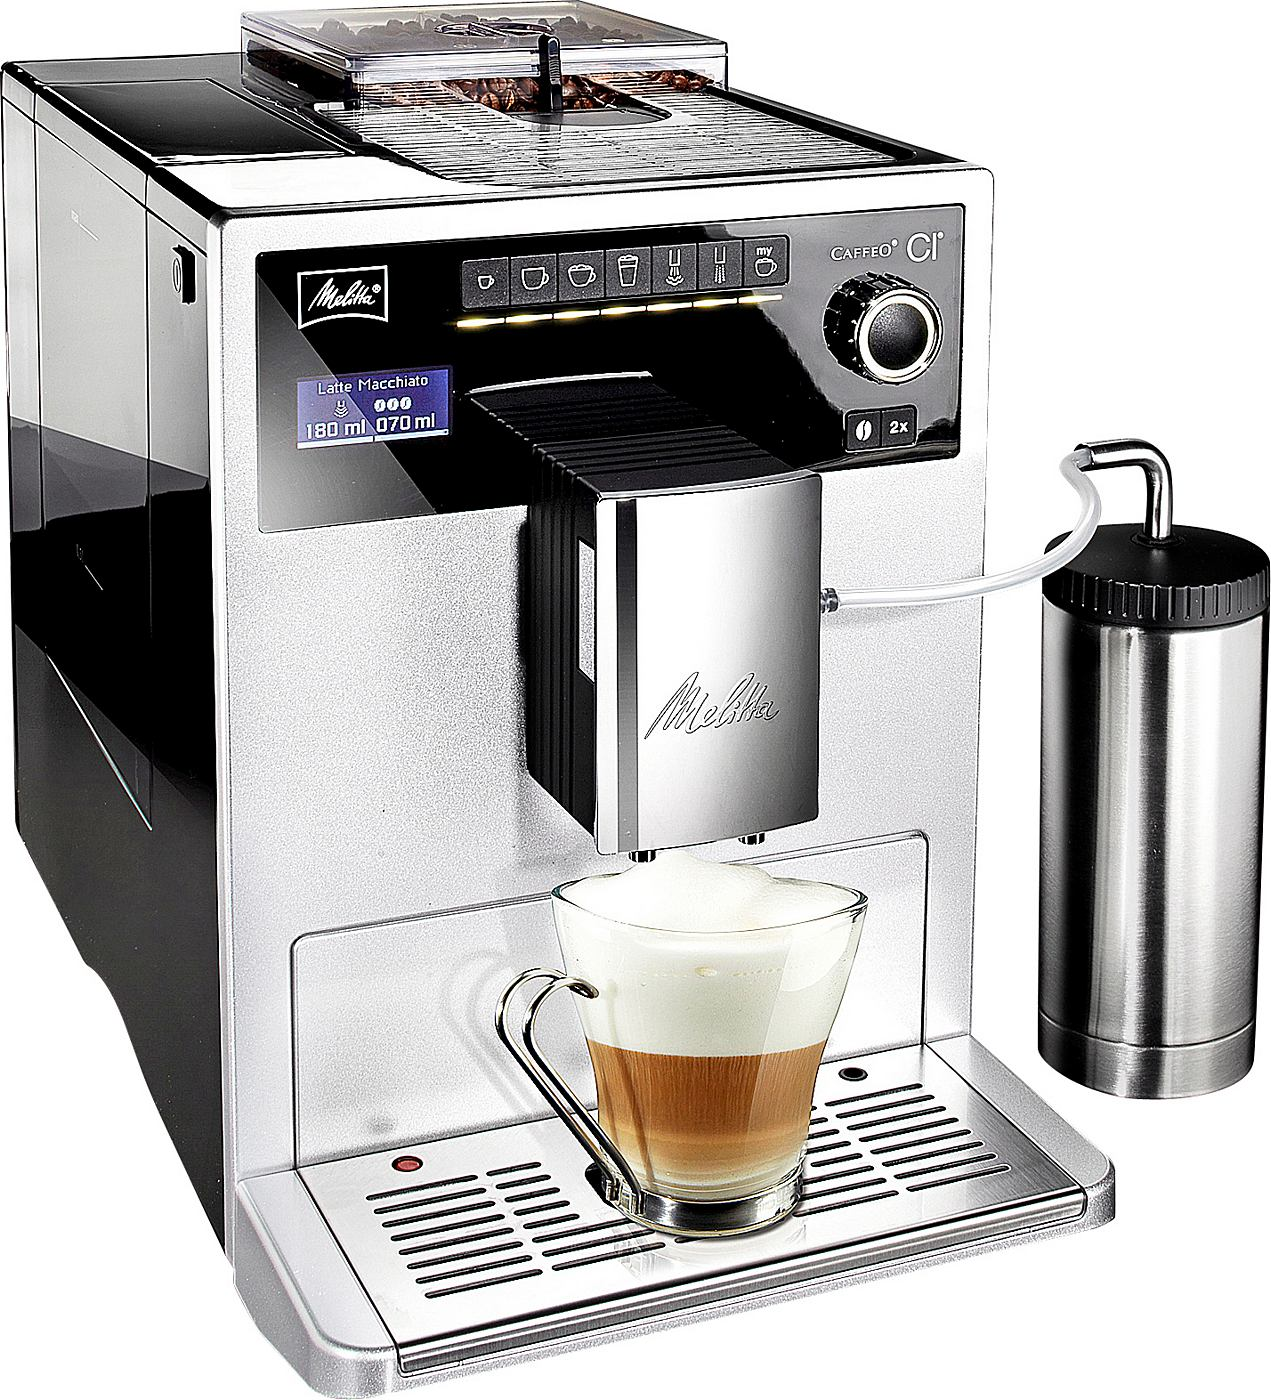 melitta e 970 306 kaffeevollautomat caffeo ci one touch cappuccino lcd display. Black Bedroom Furniture Sets. Home Design Ideas